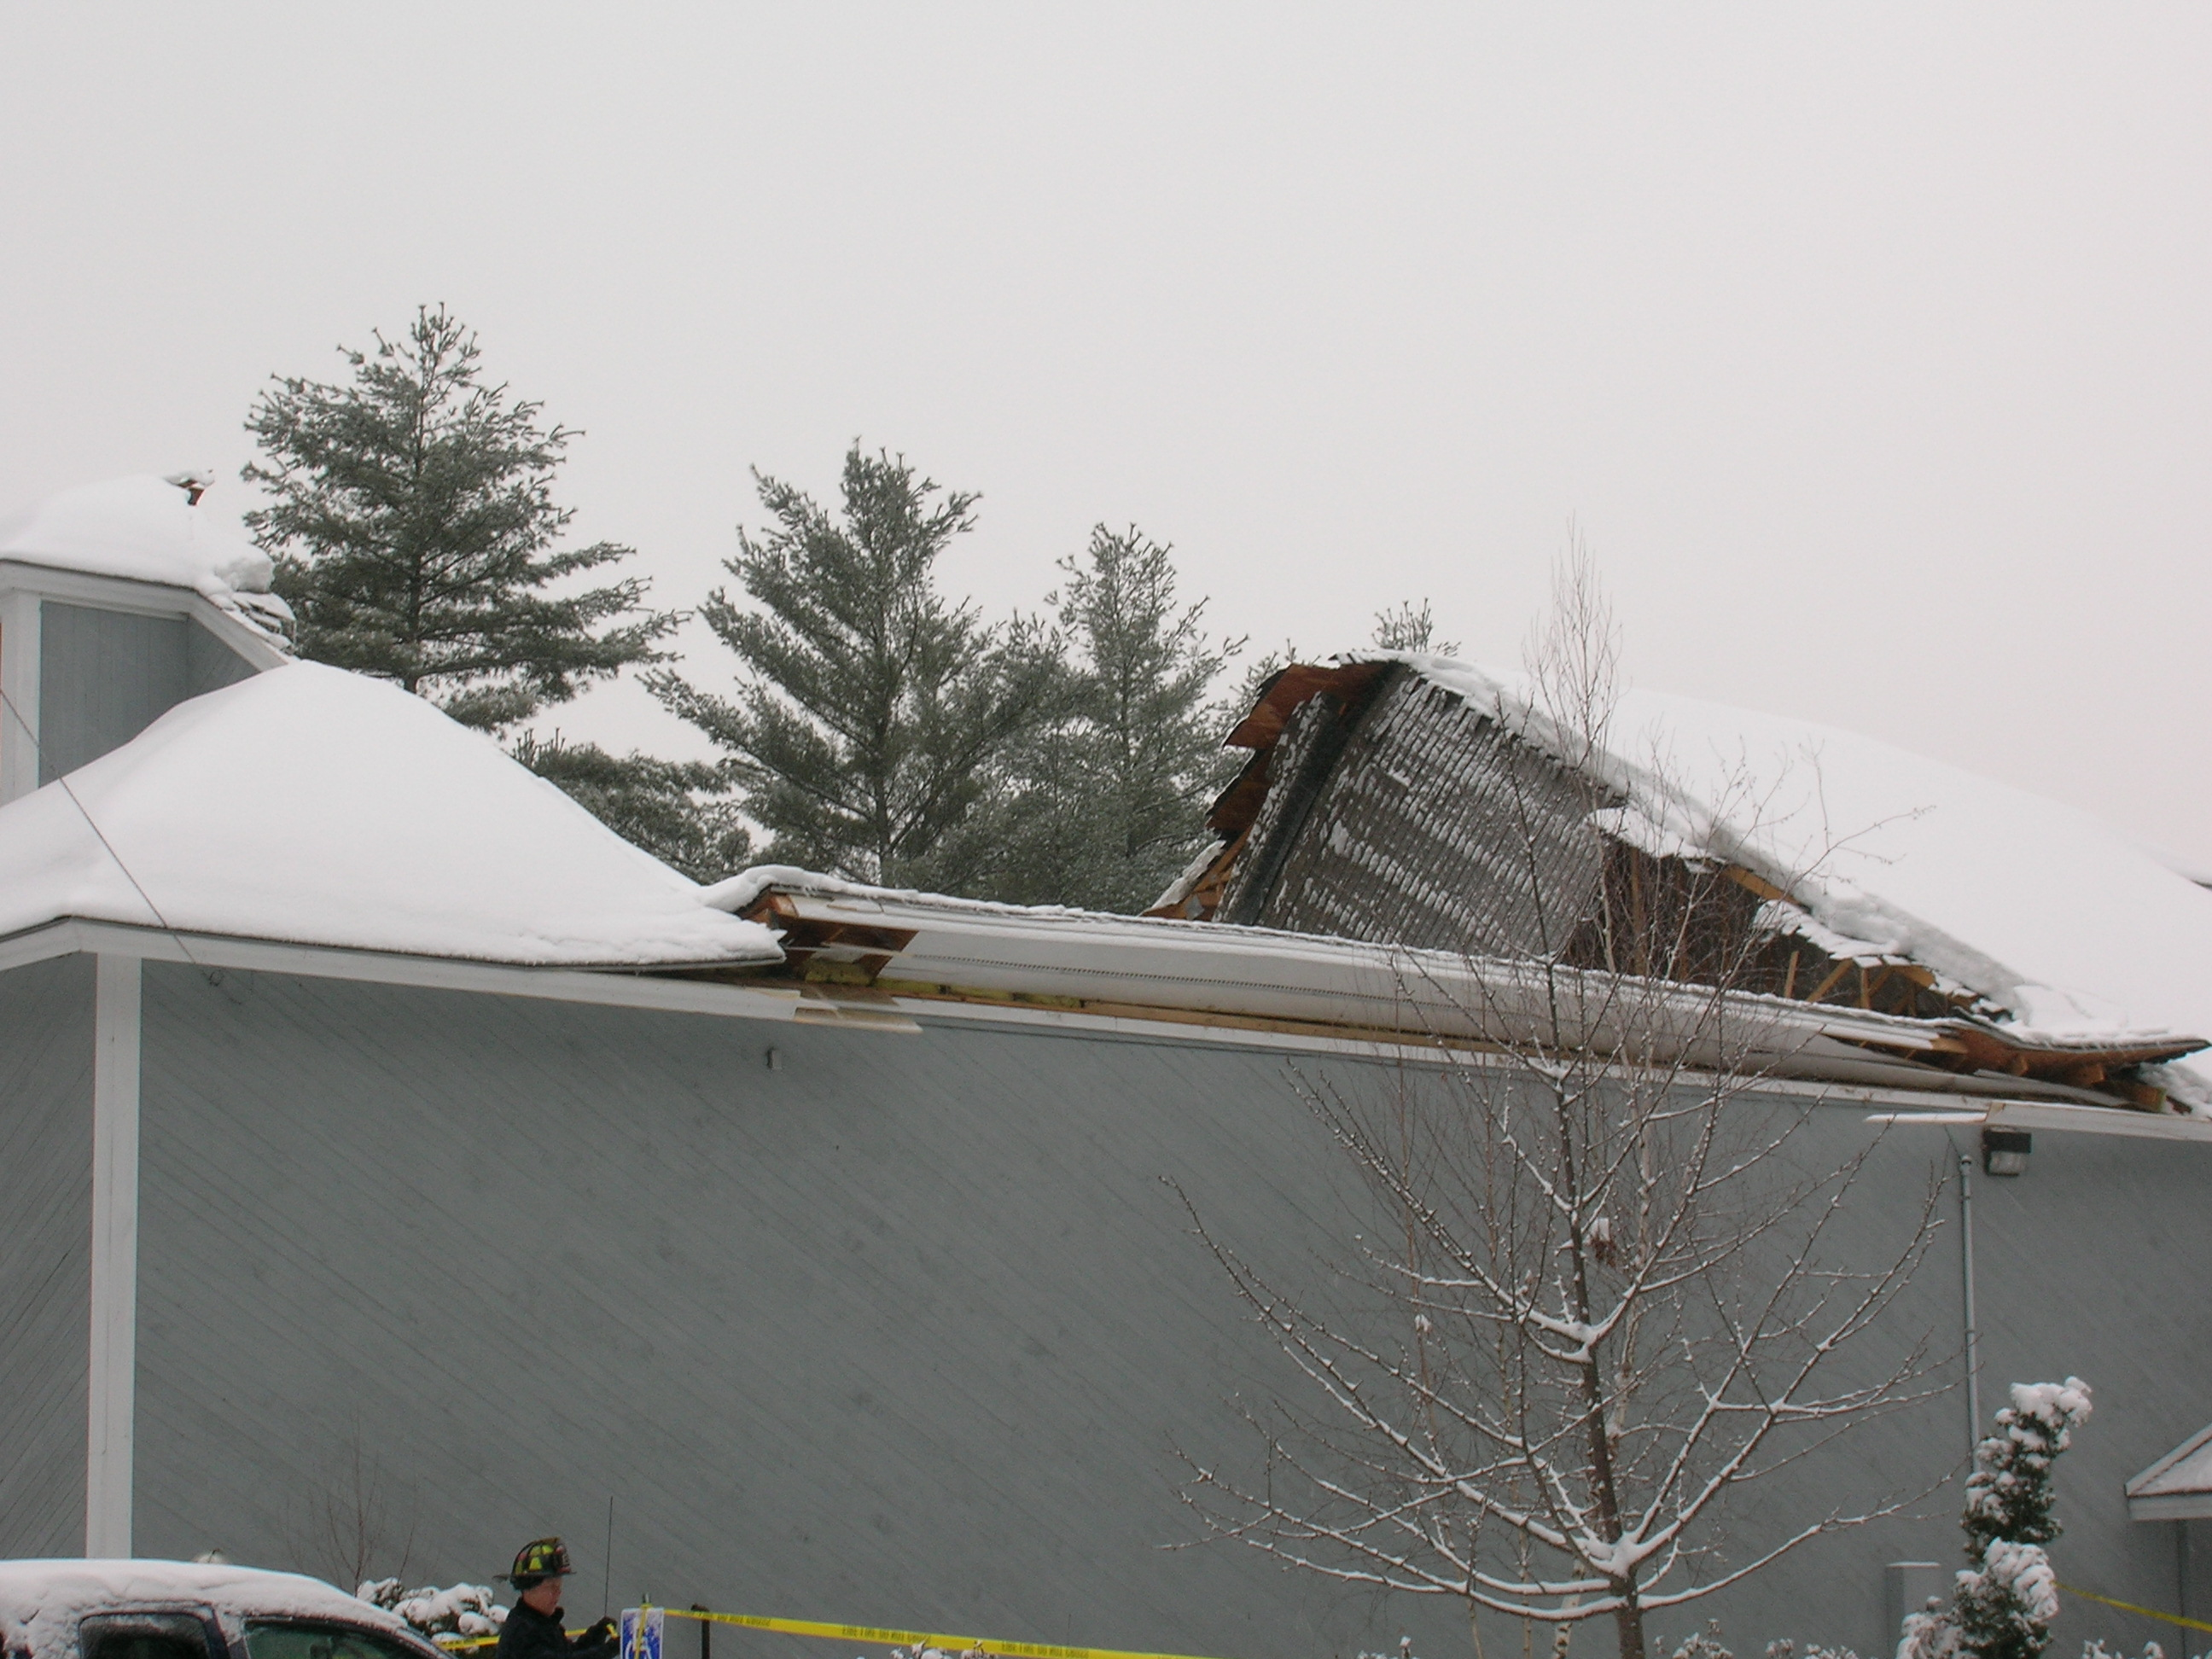 Building Collapse on Josiah Bartlett Rd.